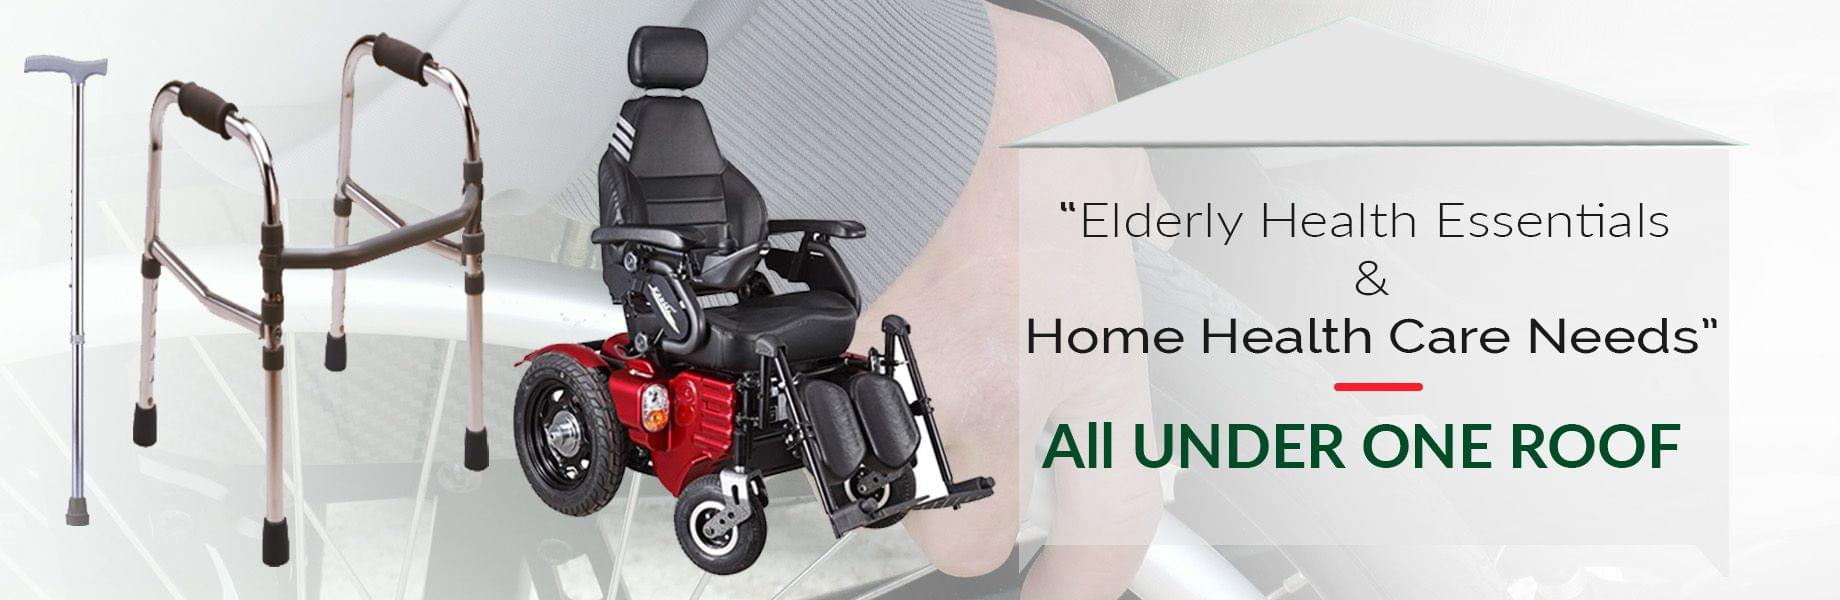 home health care india nursing care services medical equipment